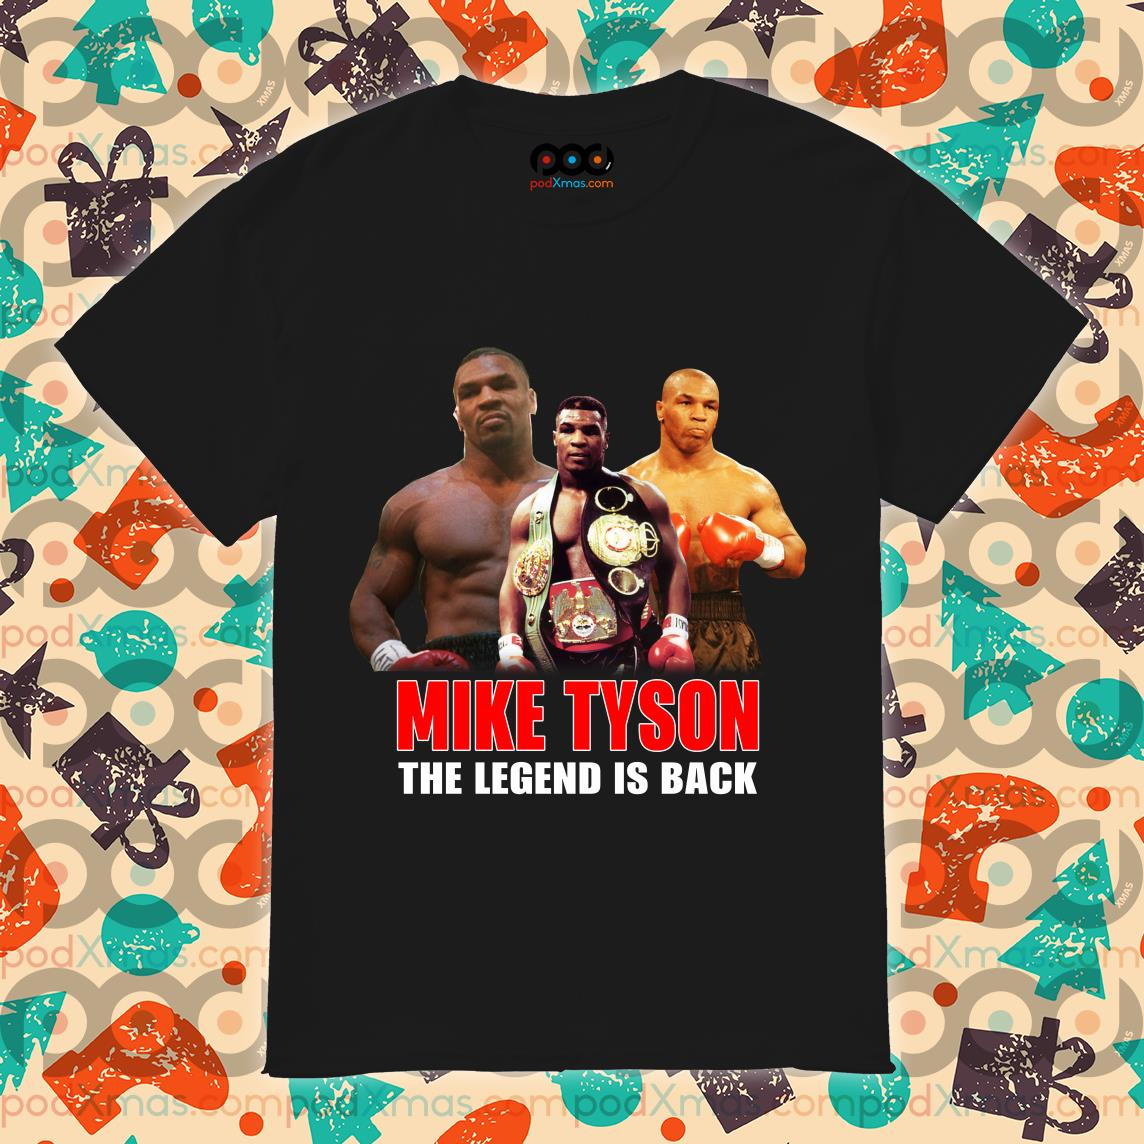 mike tyson the legend is back shirt